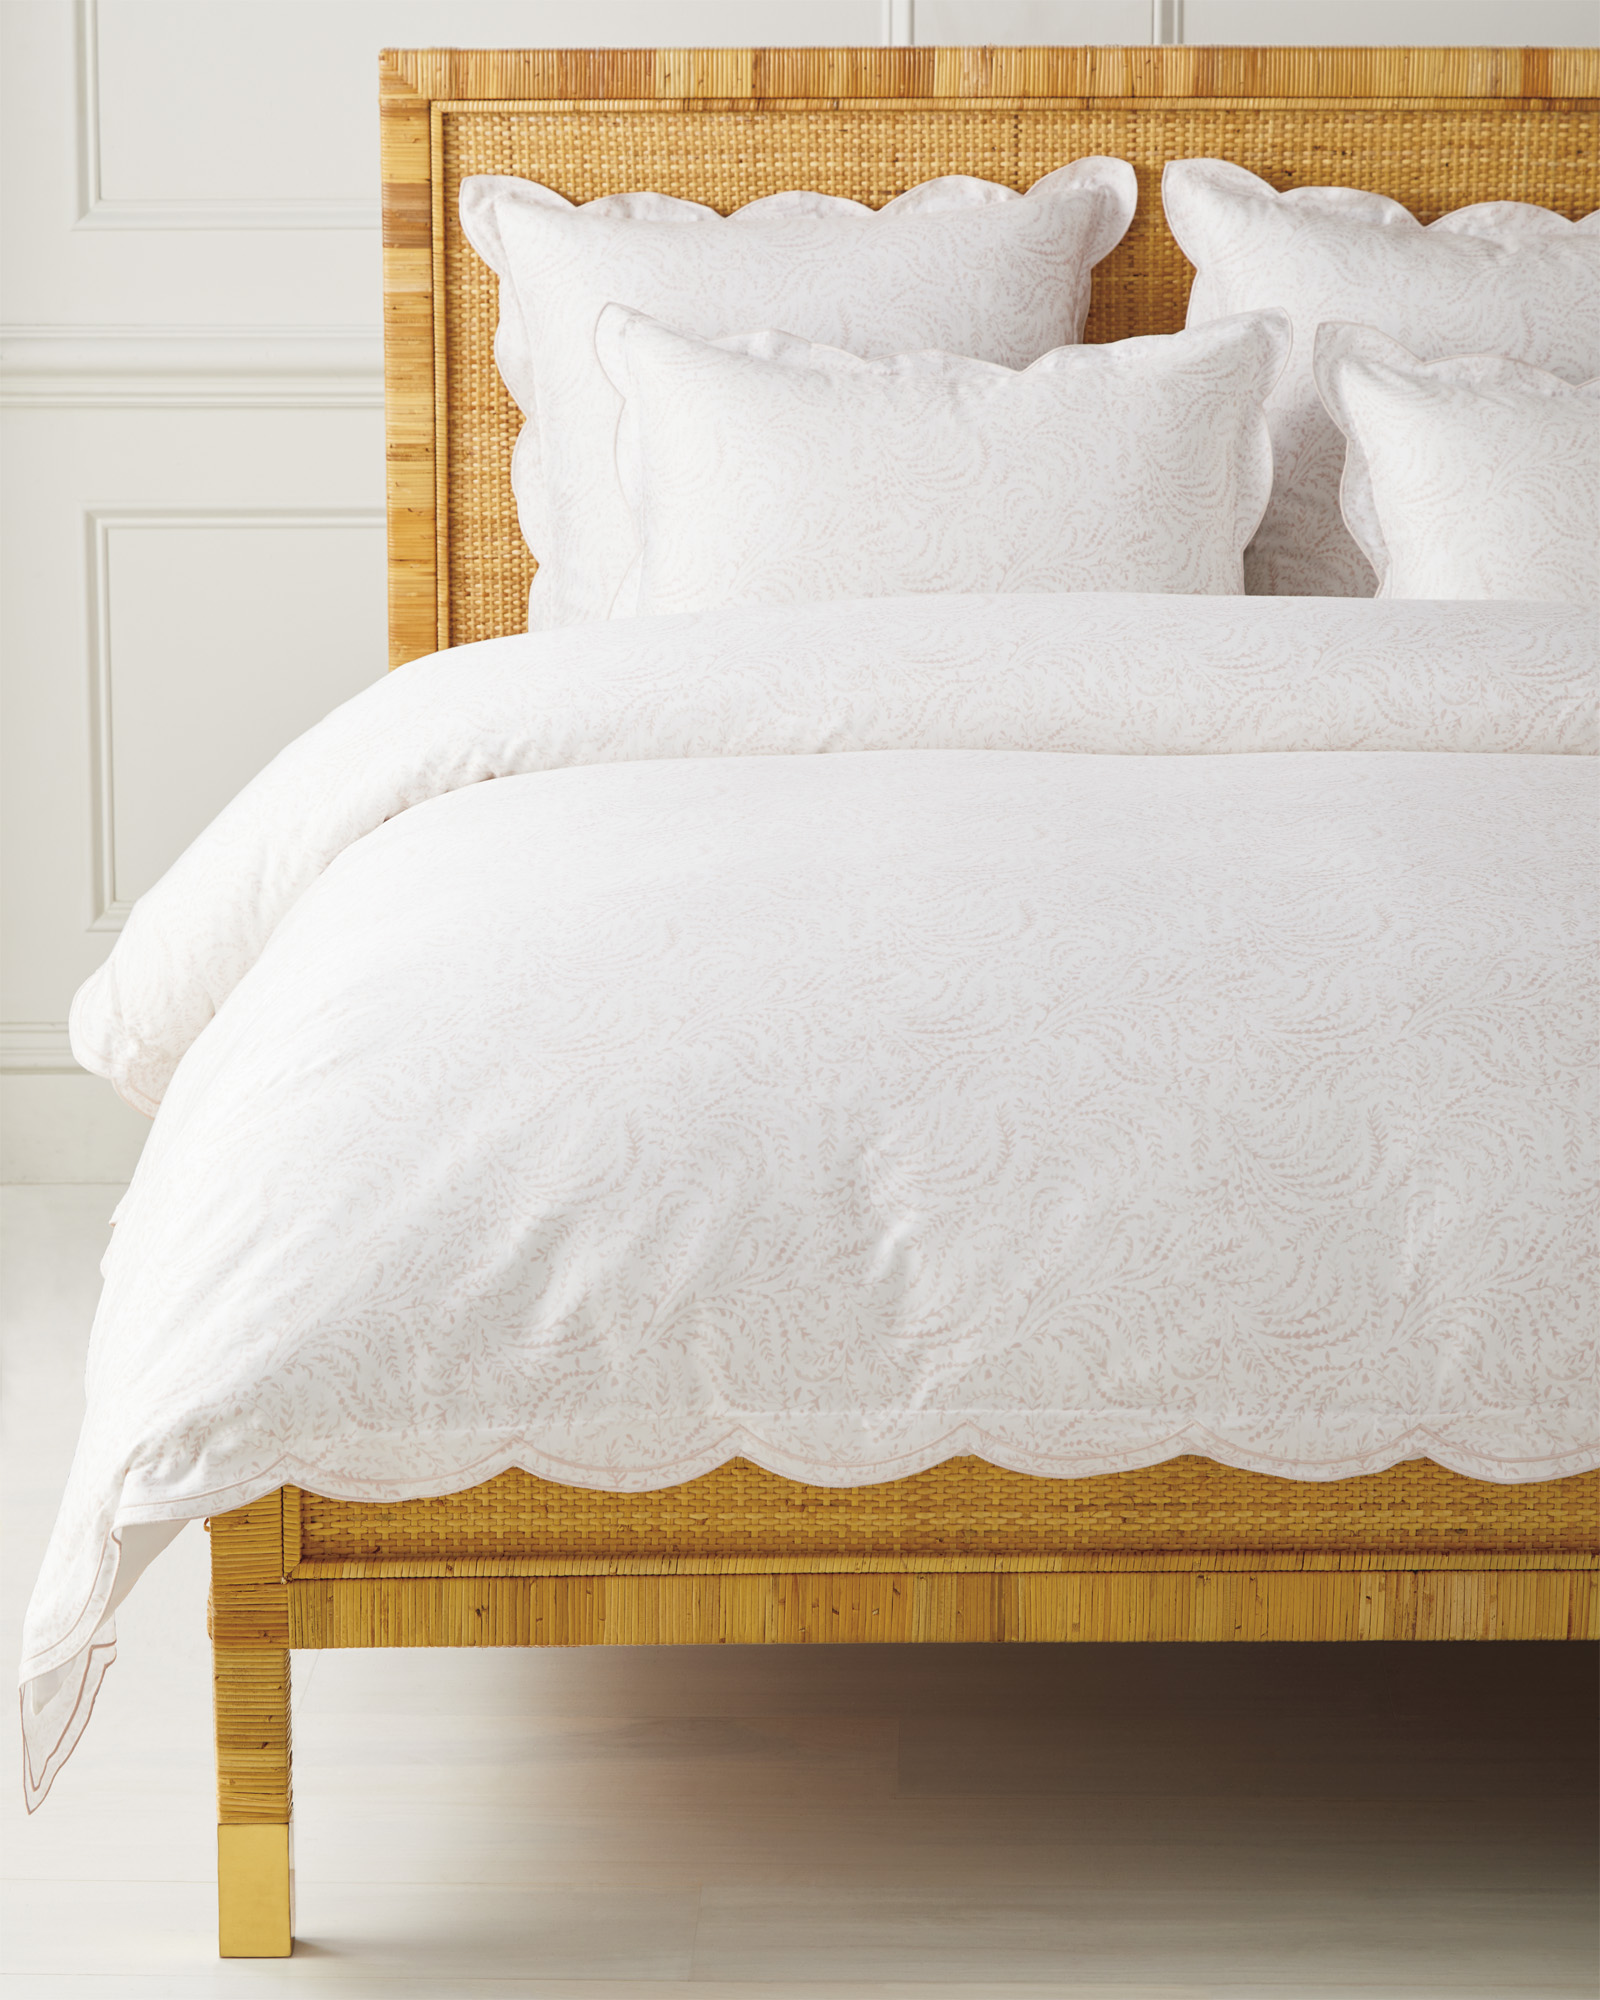 Priano Duvet Cover, Pink Sand